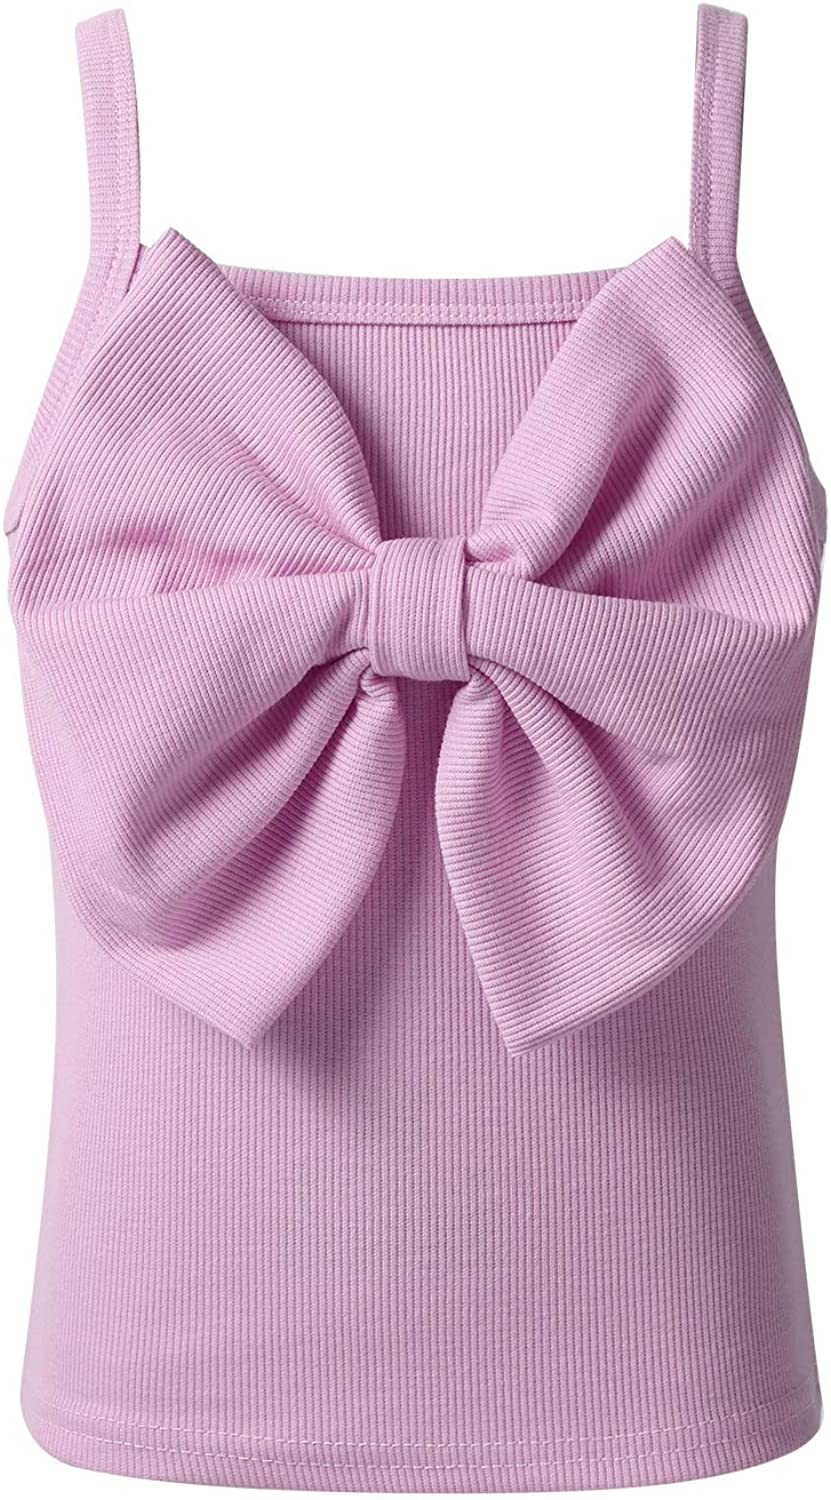 Mufeng Kids Baby Girls Camisole Tank Kansas City Mall Tops Big Ranking TOP6 Bowknot with